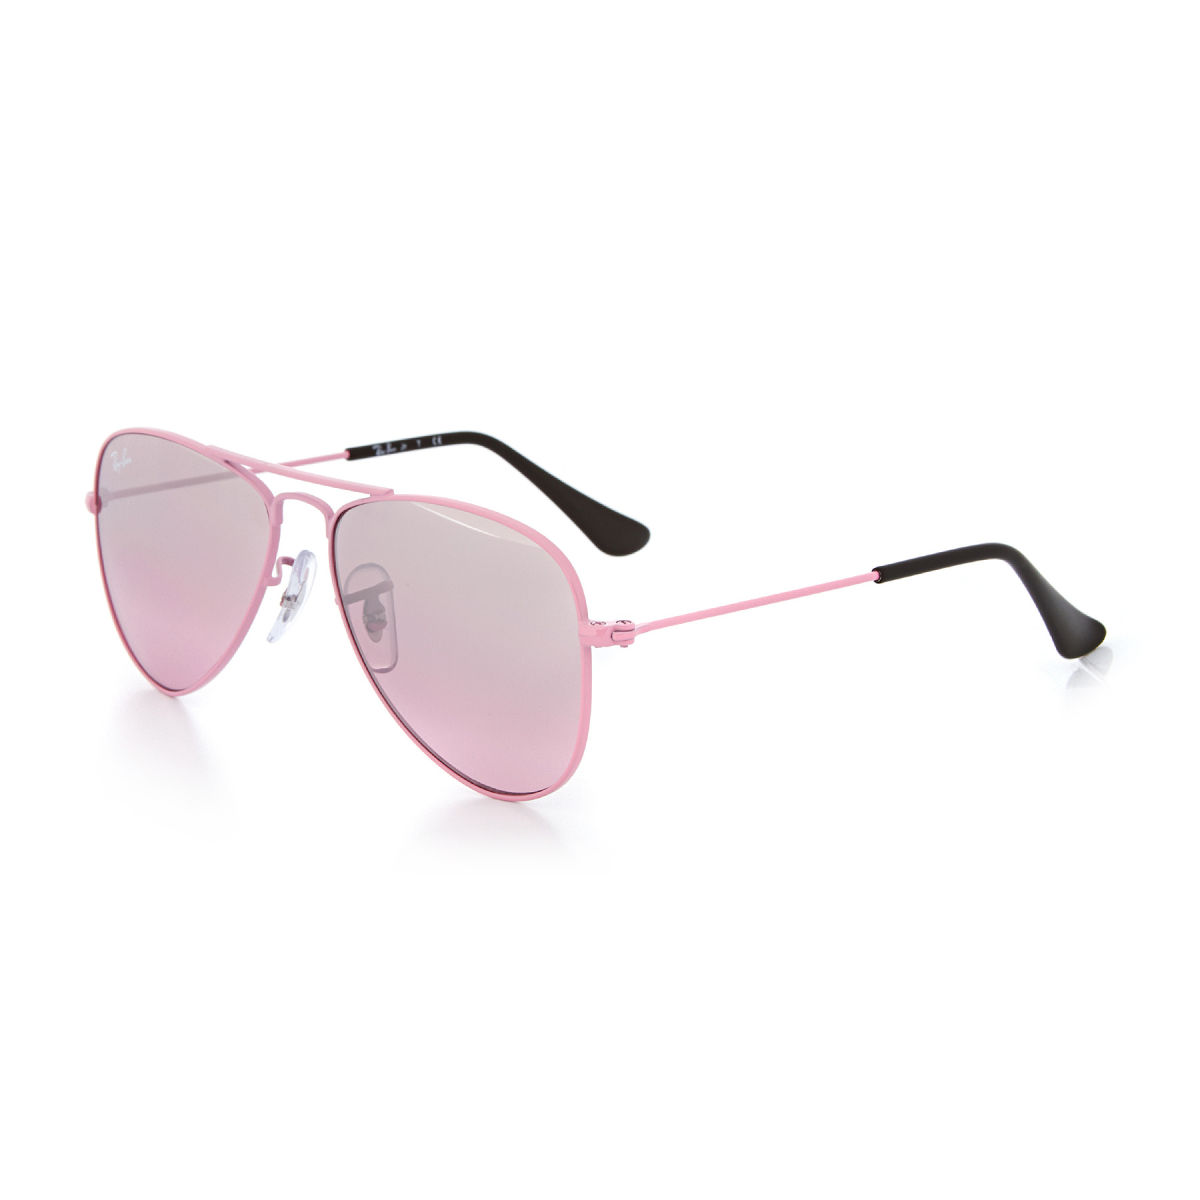 Kids Ray Ban Sunglasses  ray ban sunglasses junior